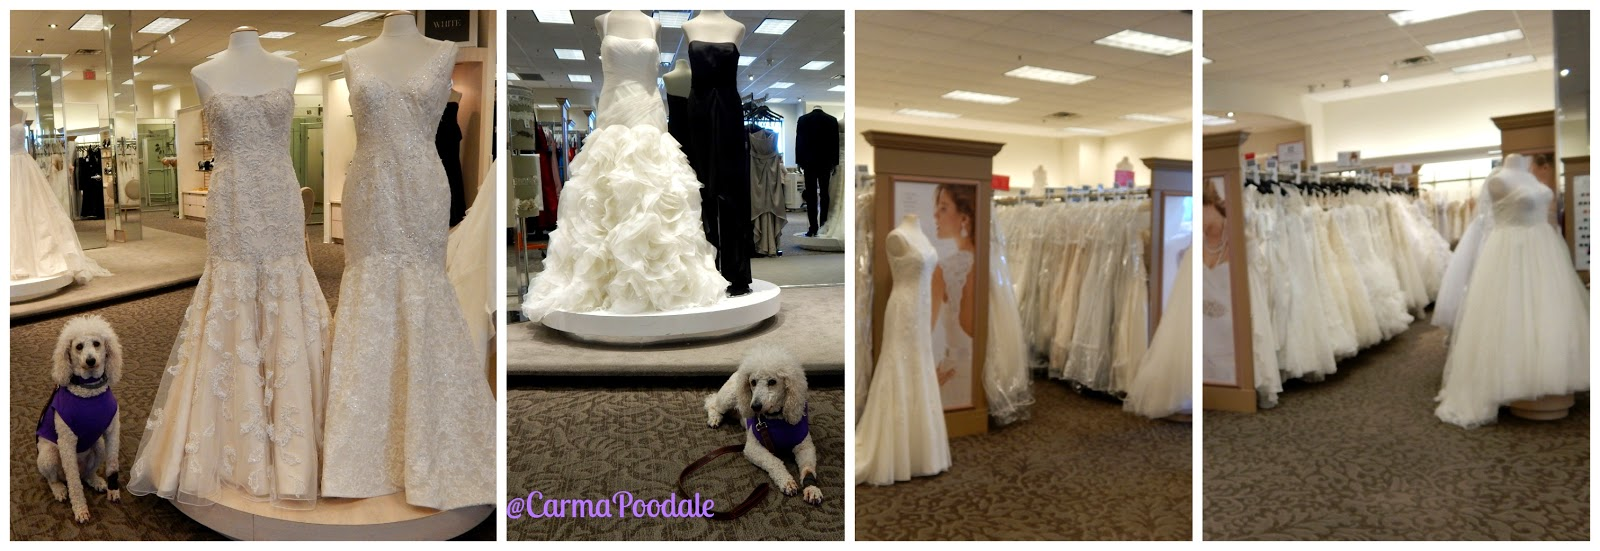 Carma by the wedding gowns